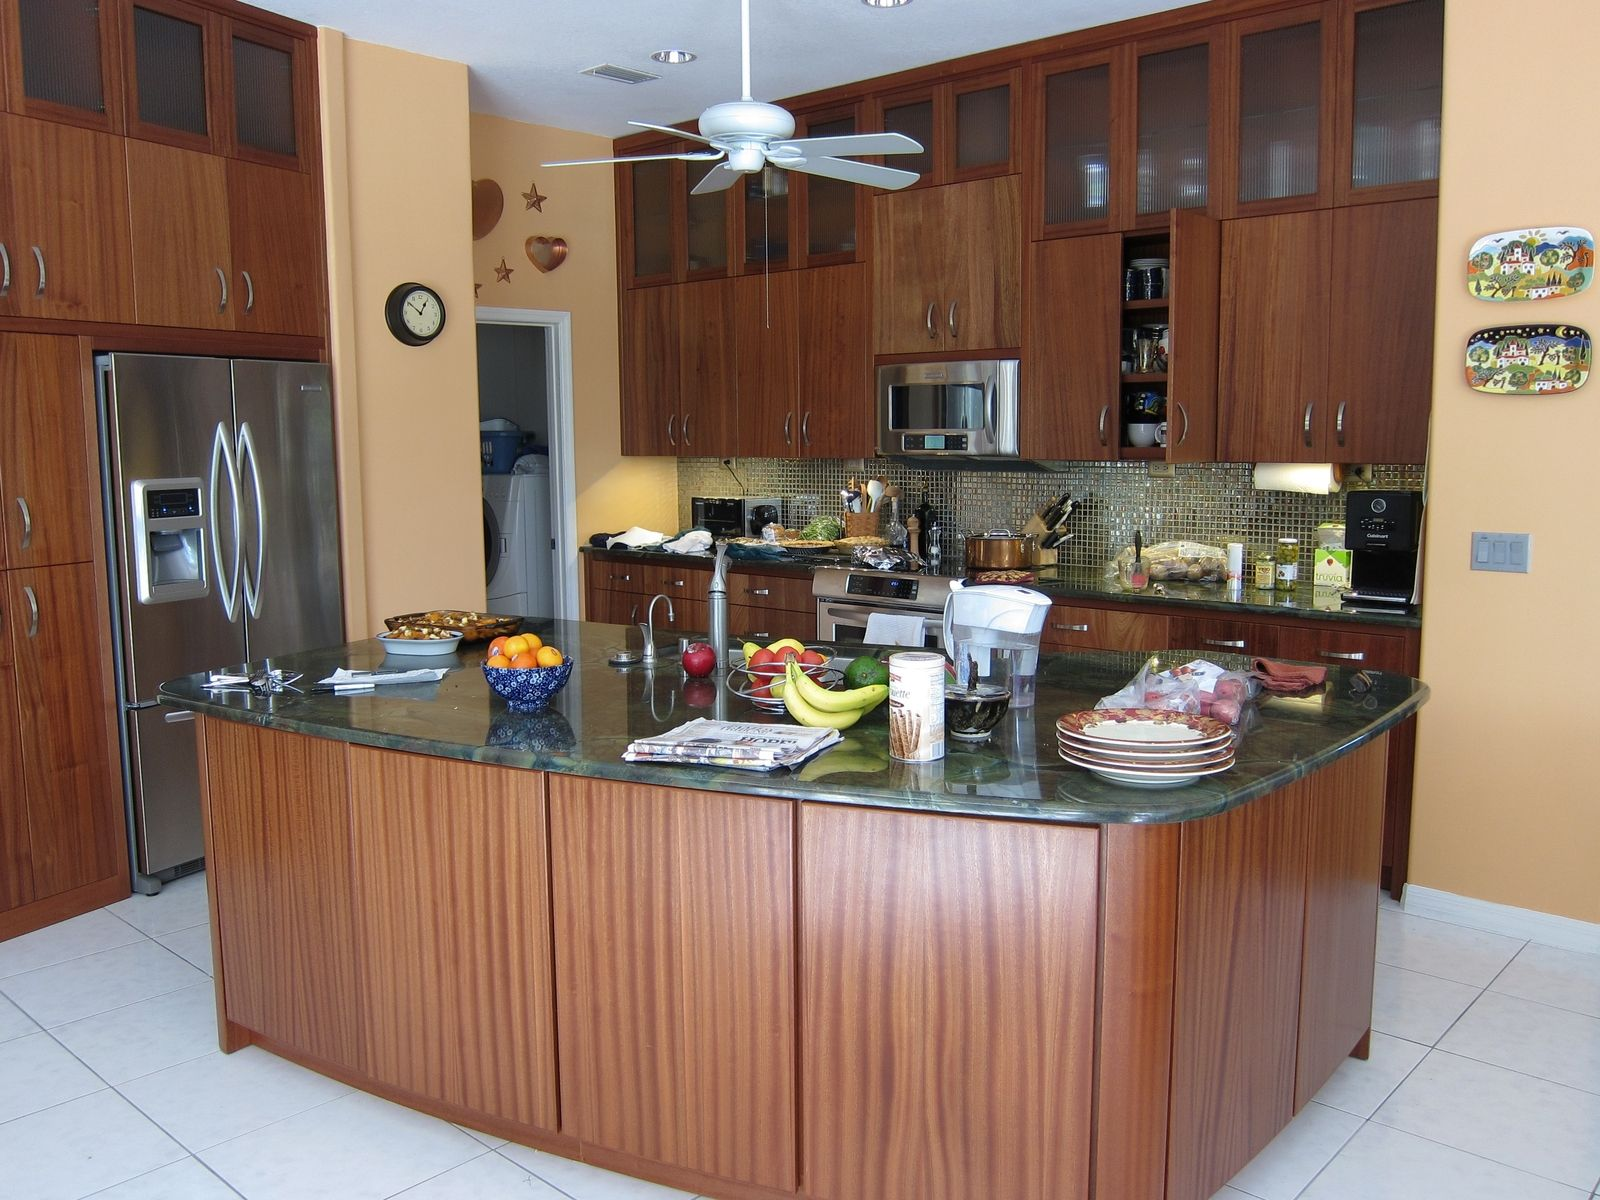 Sapele Wood Kitchen Cabinets Kitchen Cabinet Styles Wooden Kitchen Cabinets Cost Of Kitchen Cabinets